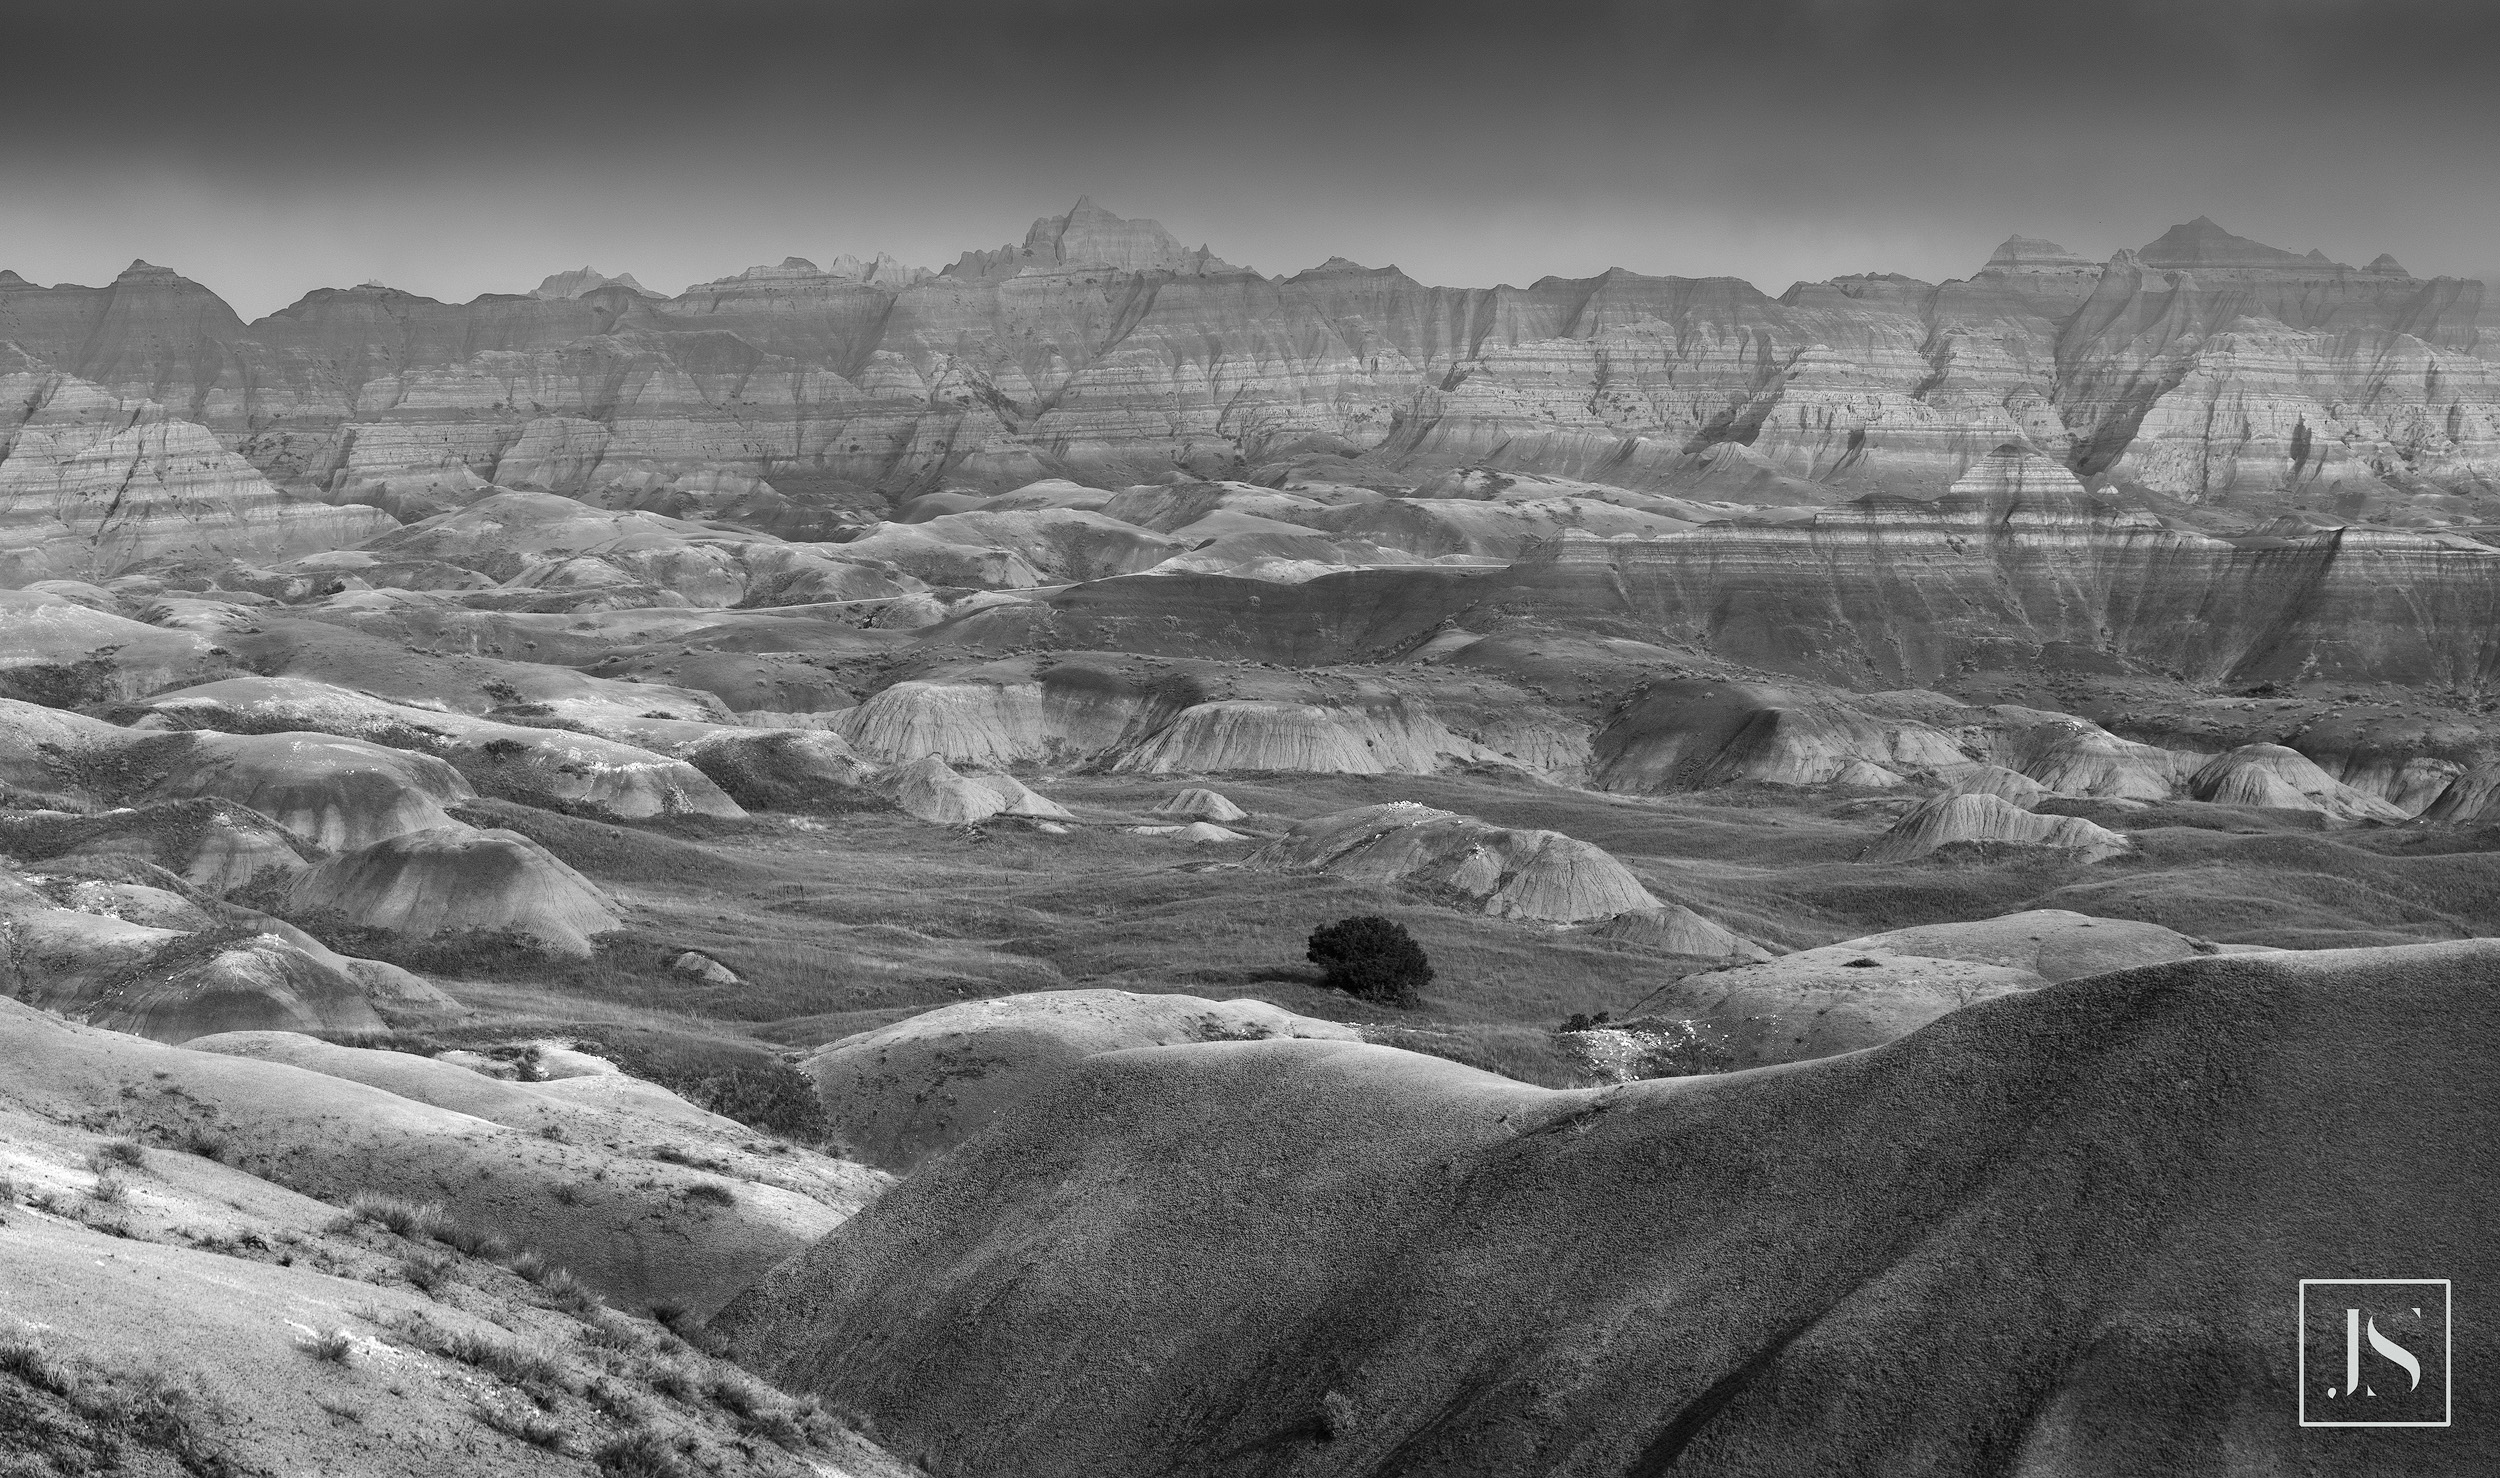 A vast overlook at the Badlands